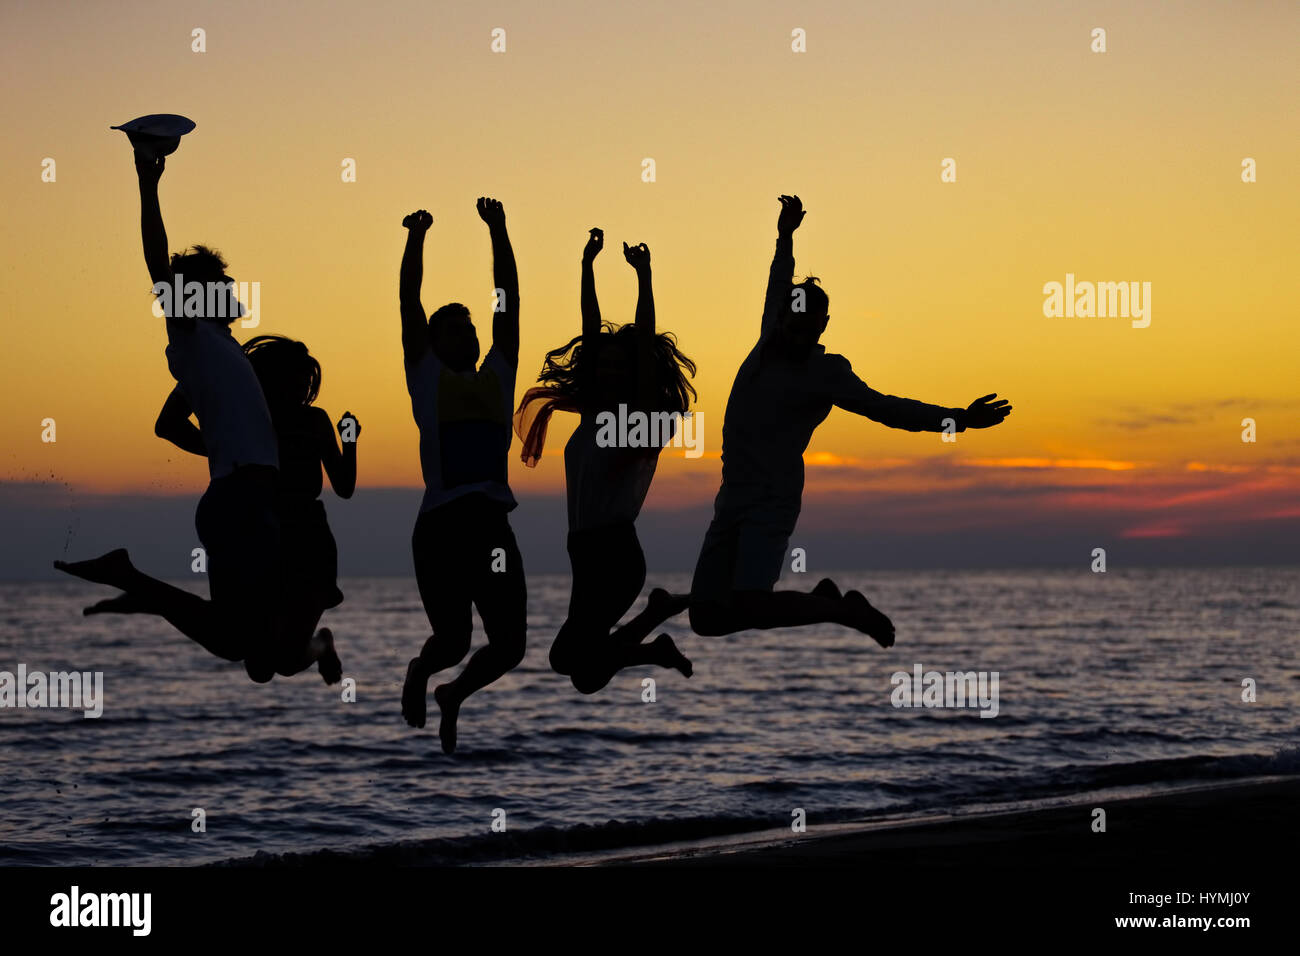 silhouette of friends jumping on beach during sunset time - Stock Image